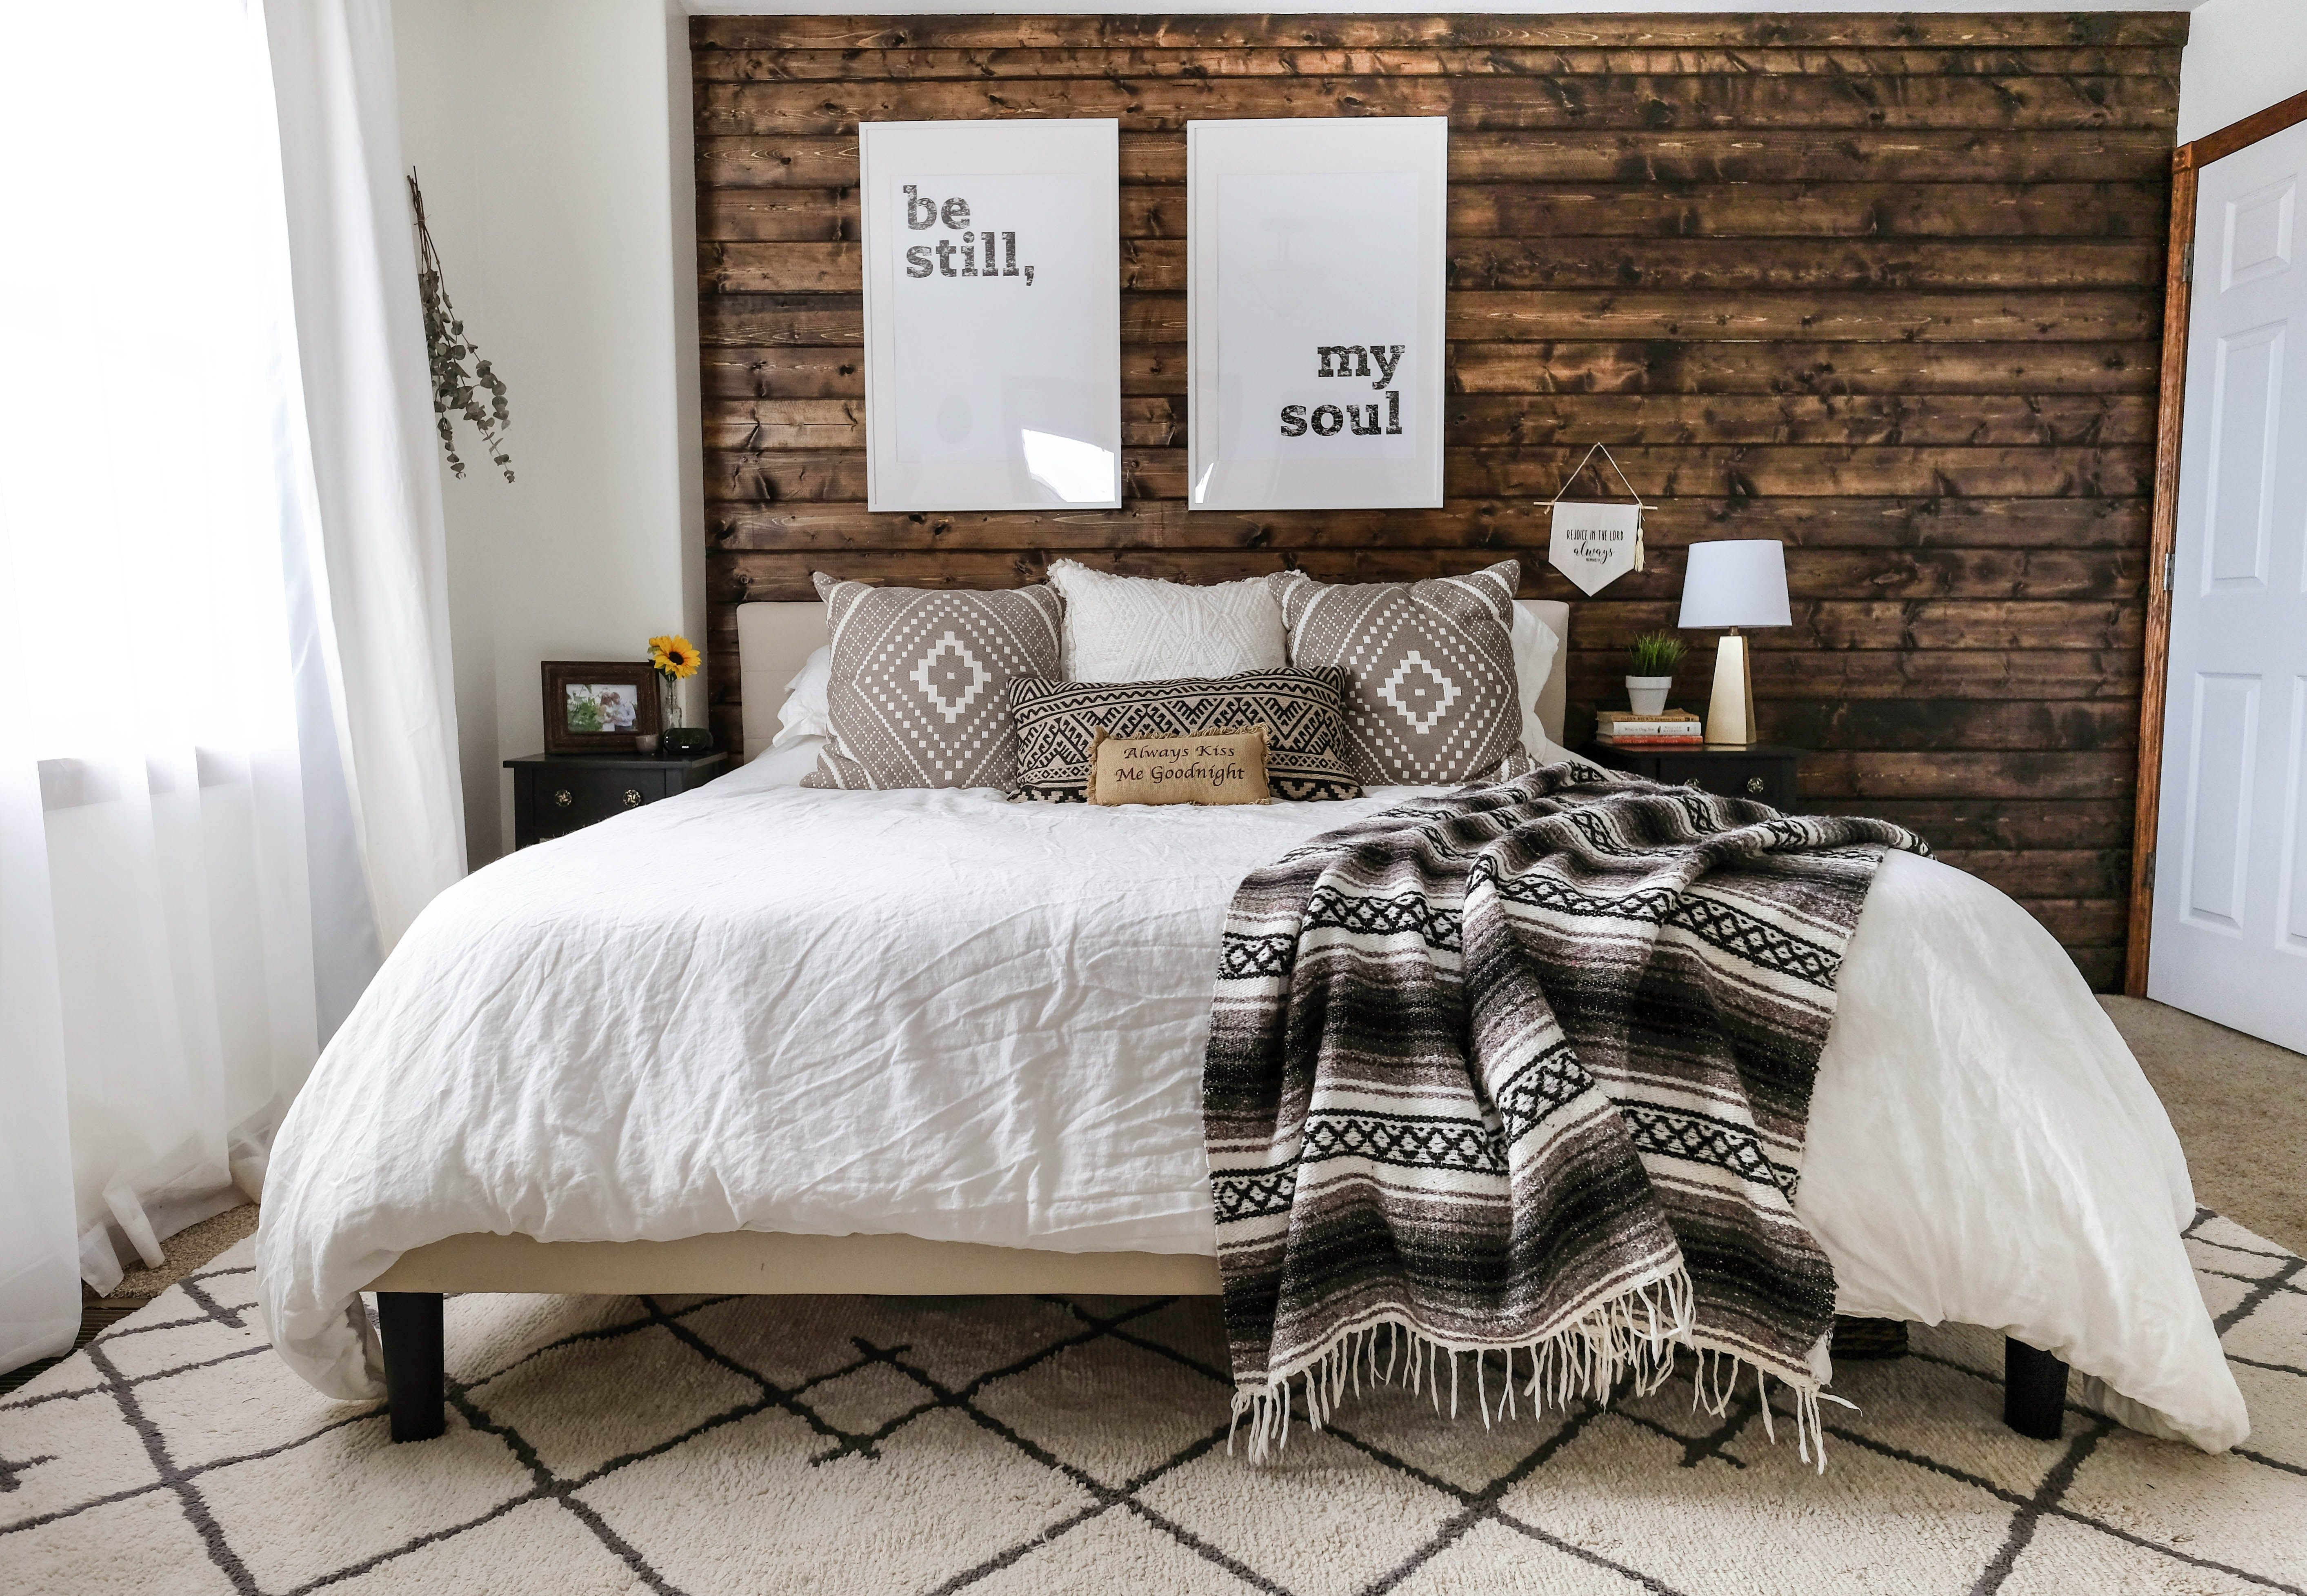 A Modern Rustic Bedroom See How To Blend Two Styles To Create A